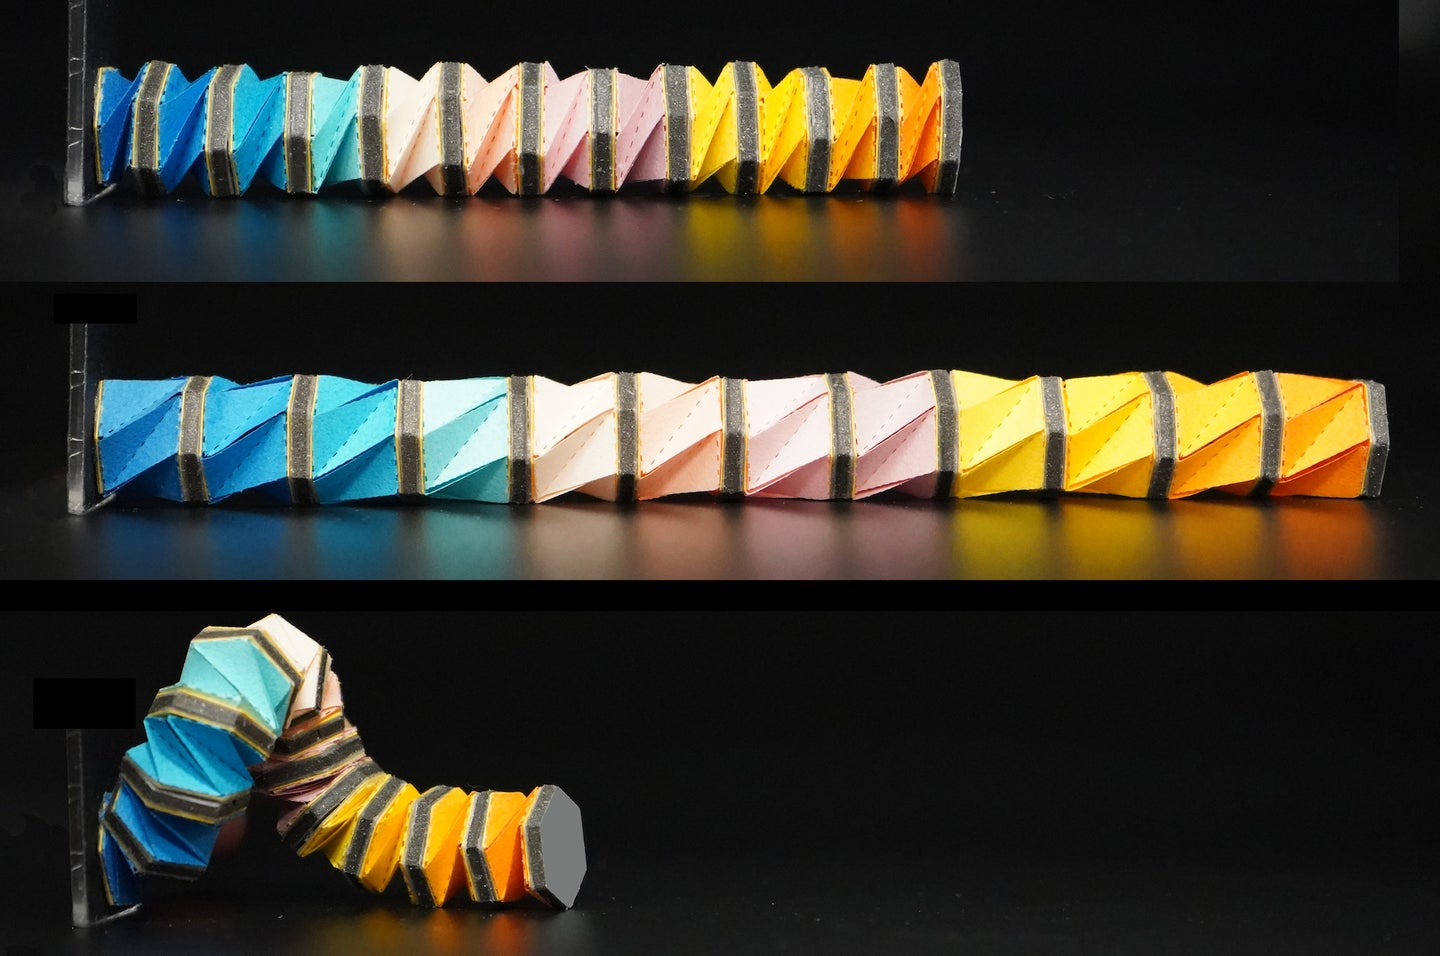 Origami and octopus inspired robo-arms could one day be used to navigate our body cavities.